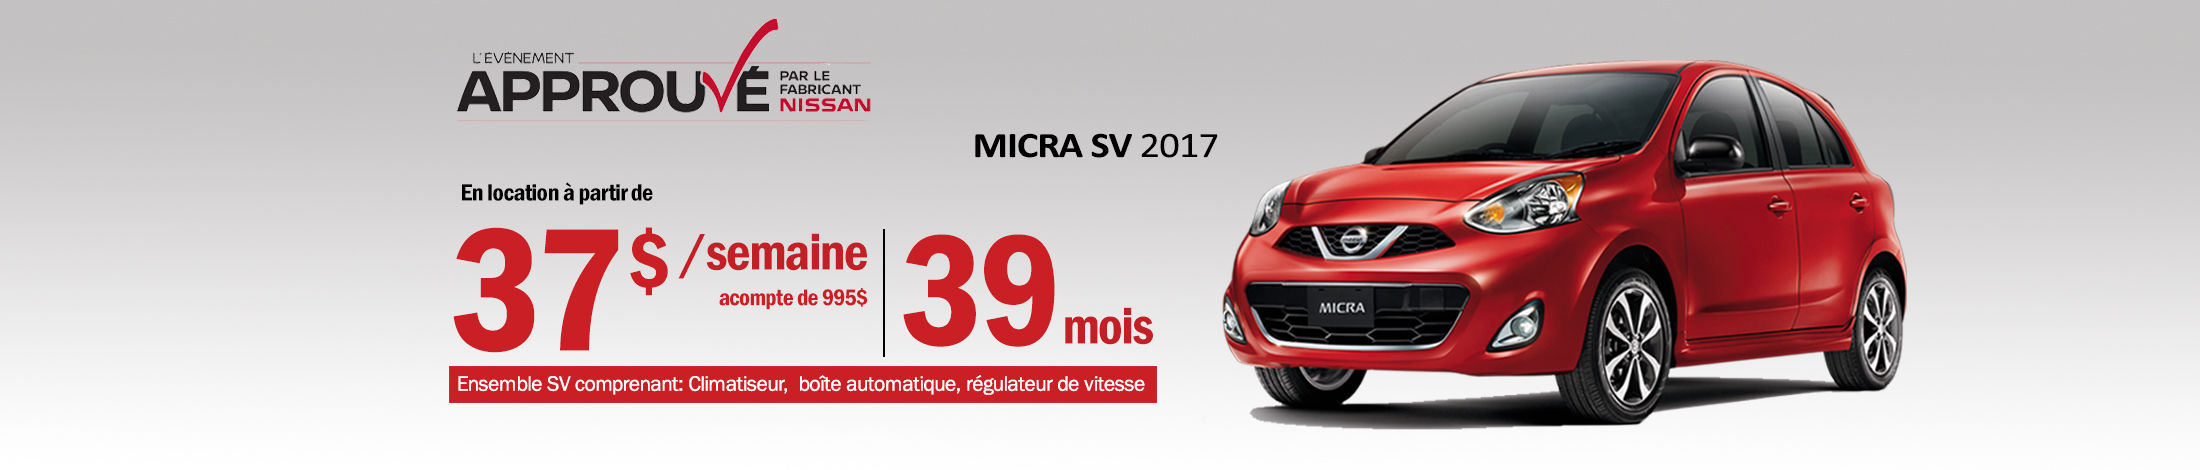 Nissan Micra Promotion Mai - Banner